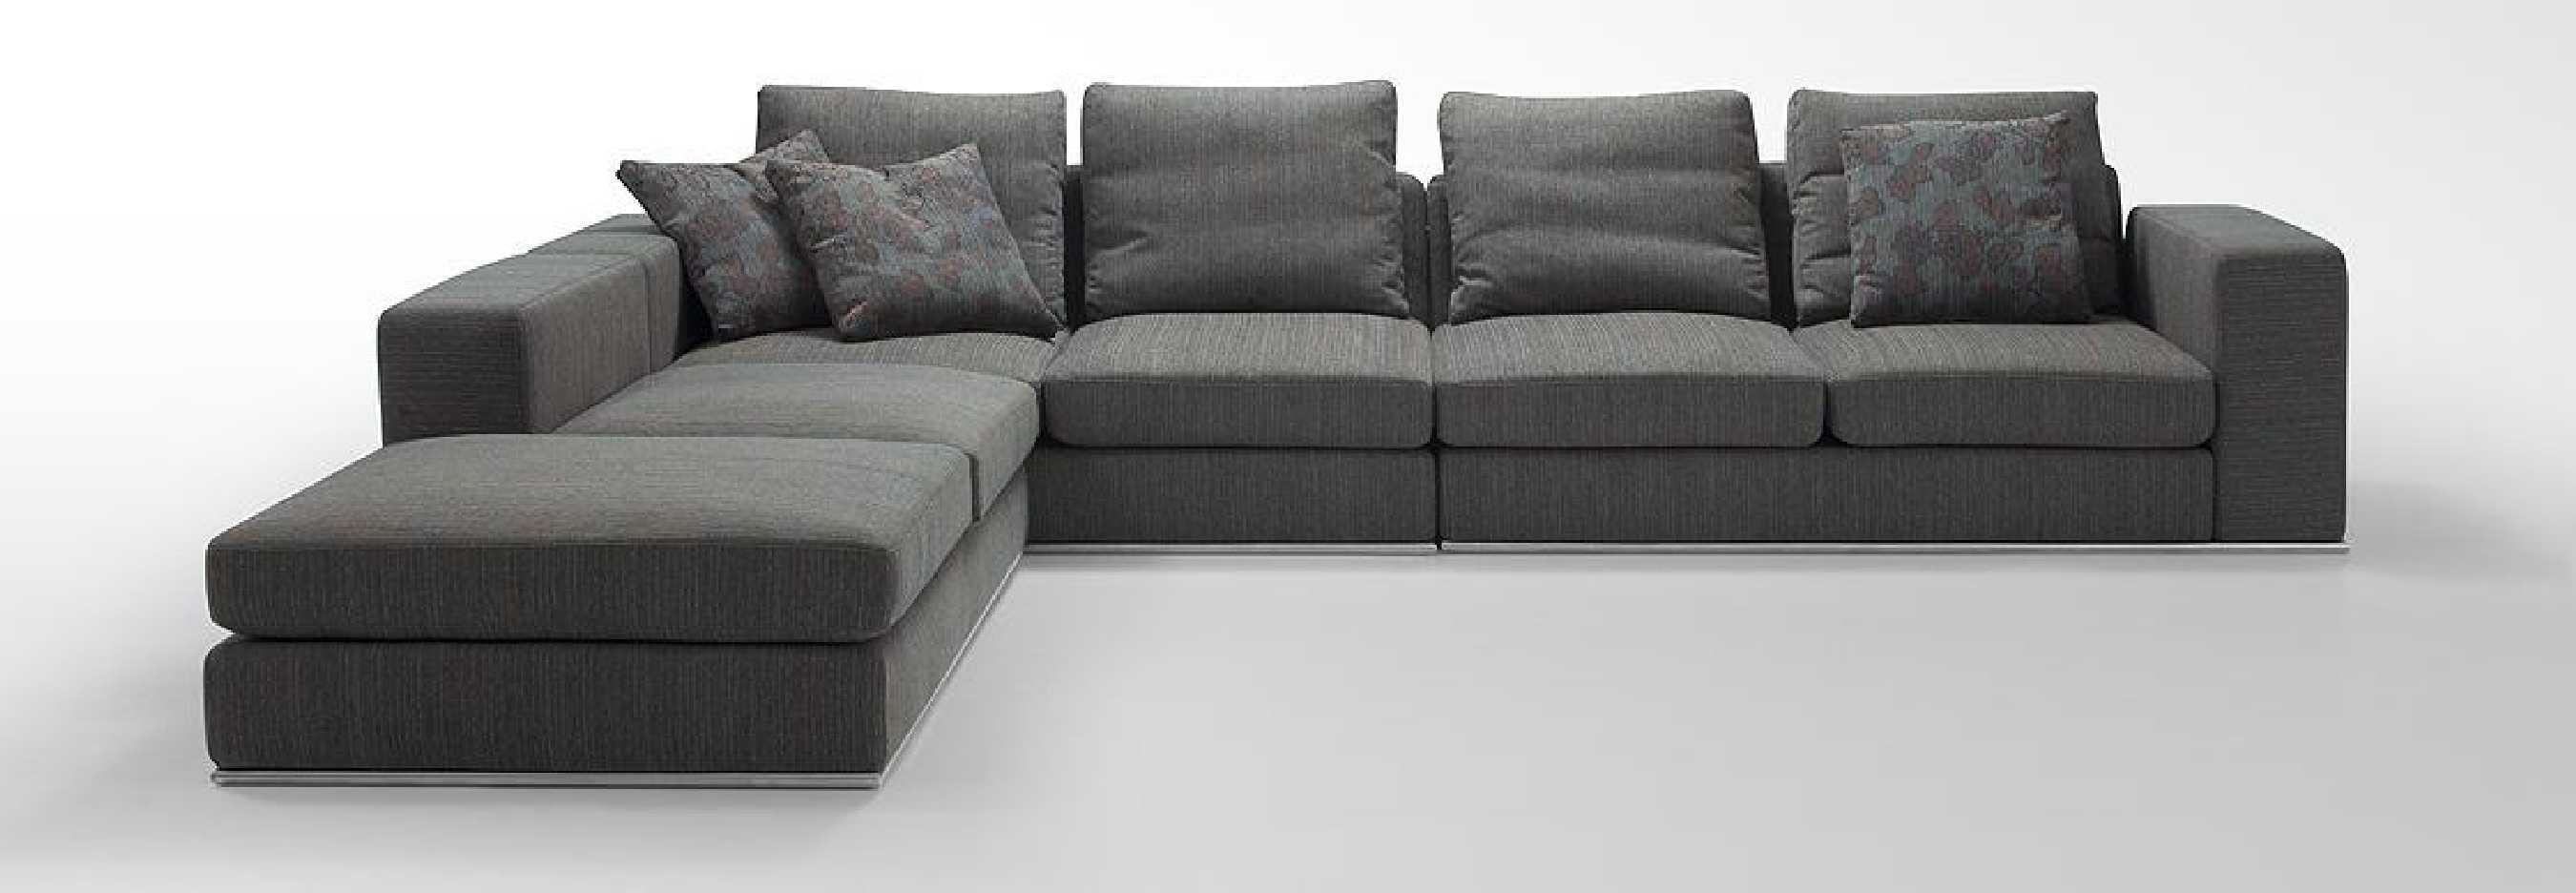 Sofa Set Covers For L Shape 20 Ideas Of Small L Shaped Sectional Sofas Sofa Ideas